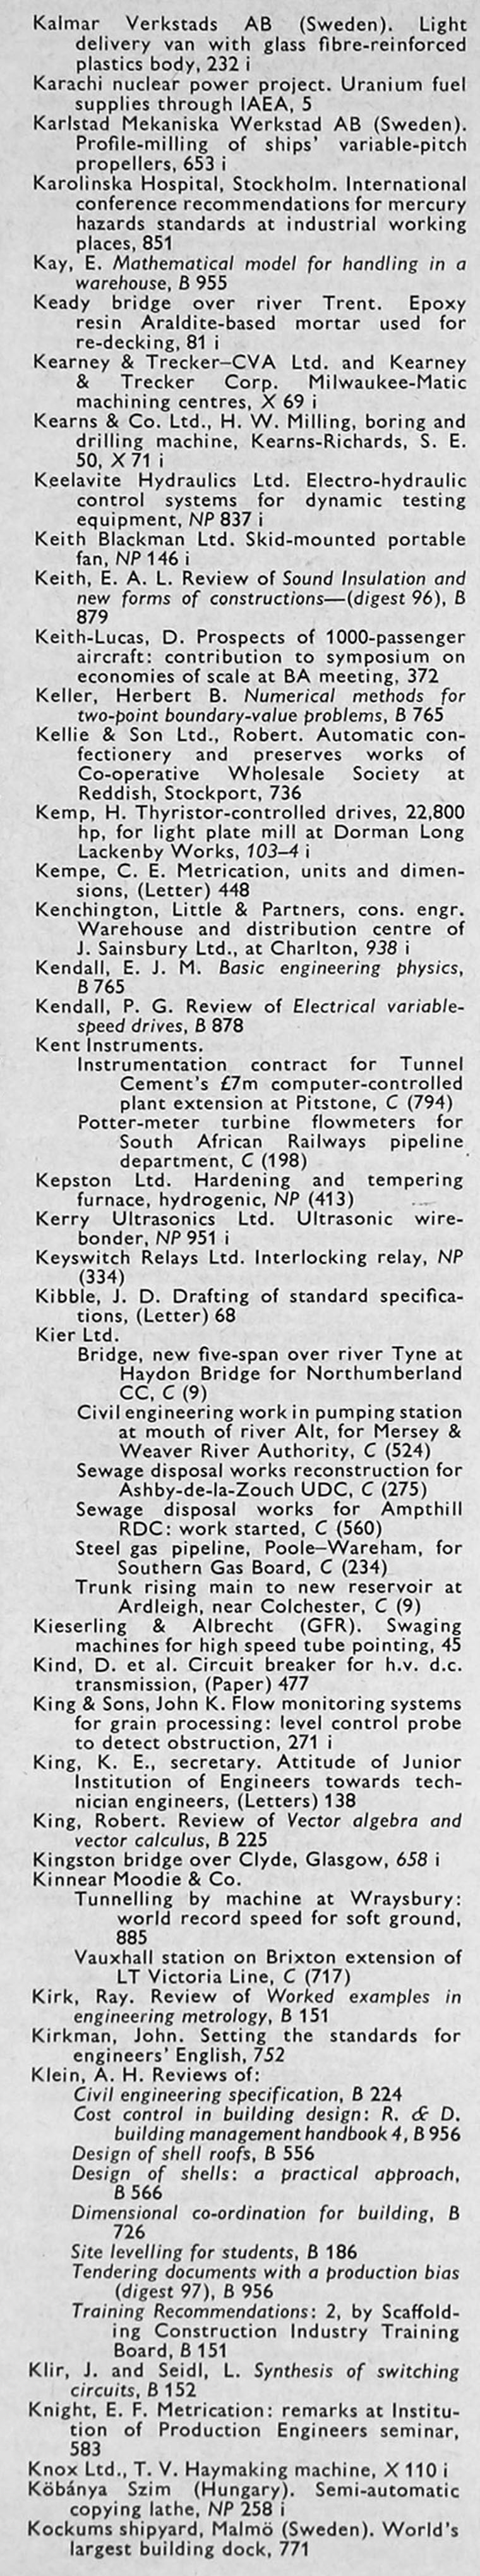 The Engineer 1968 Jul Dec Index John Deere Backhoe Wiring Diagram As Well Thermo King Diagrams